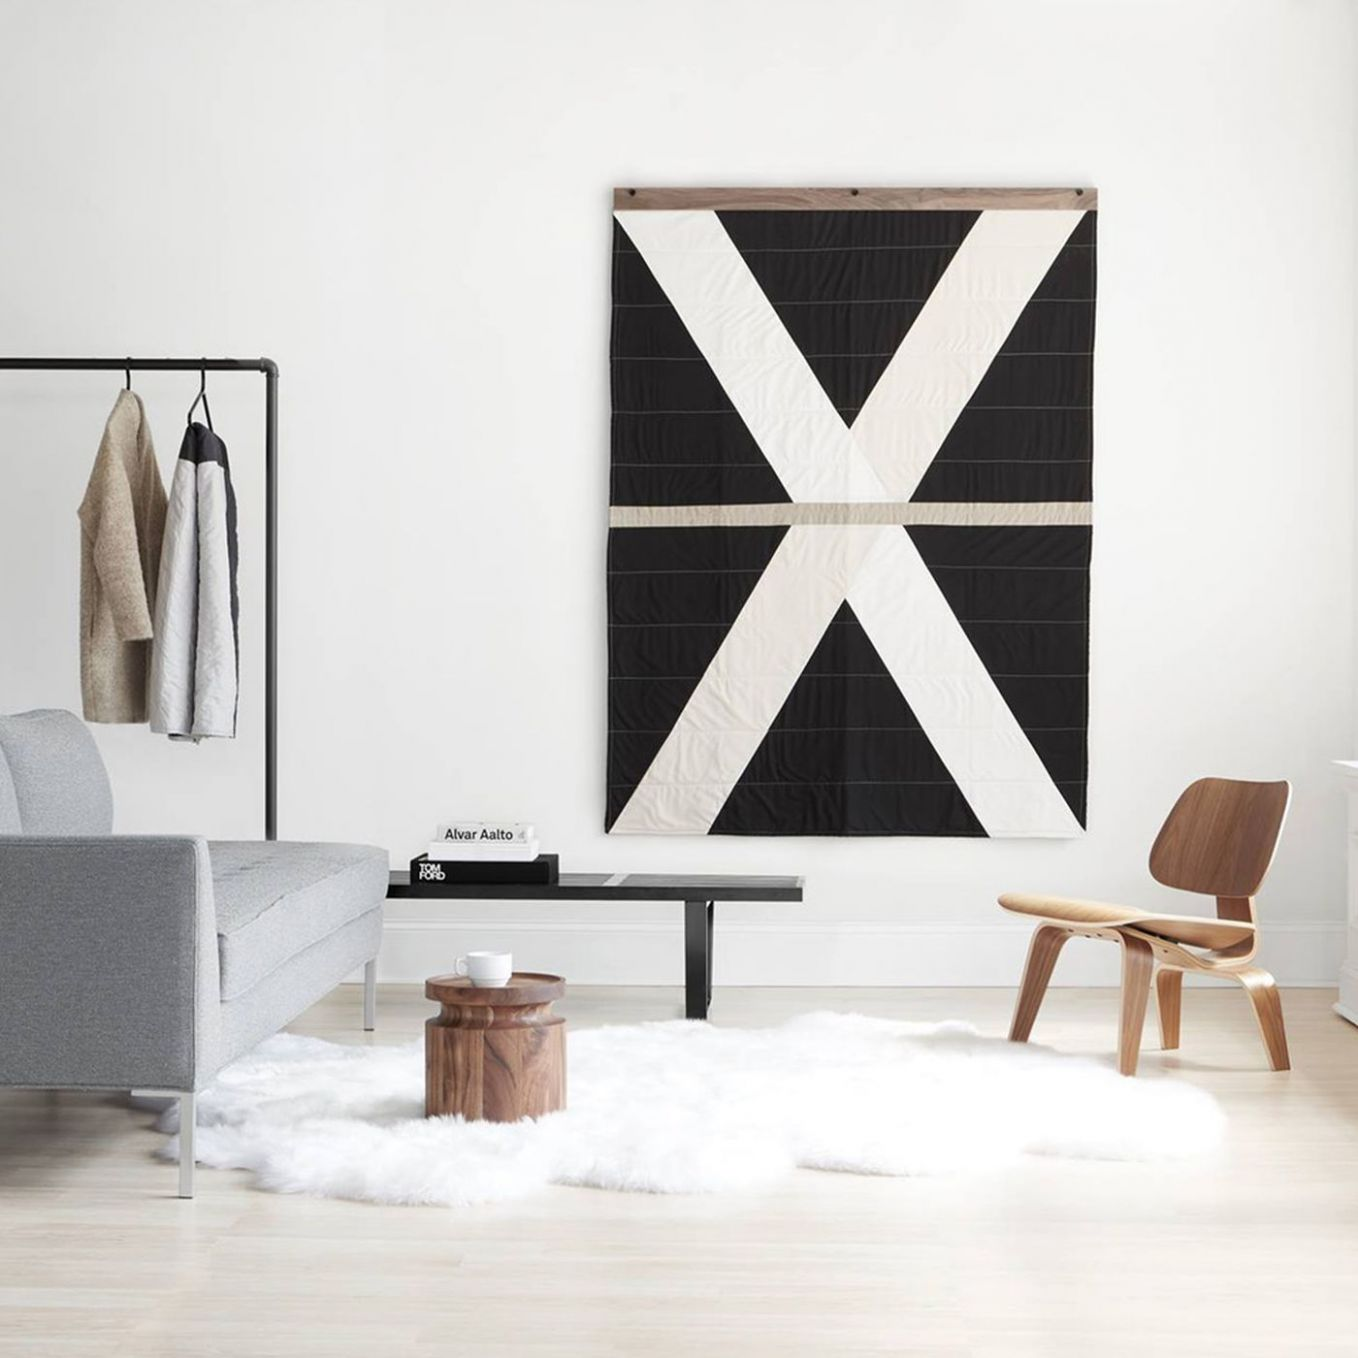 11 cool online stores for home decor and high design - Curbed - home decor store